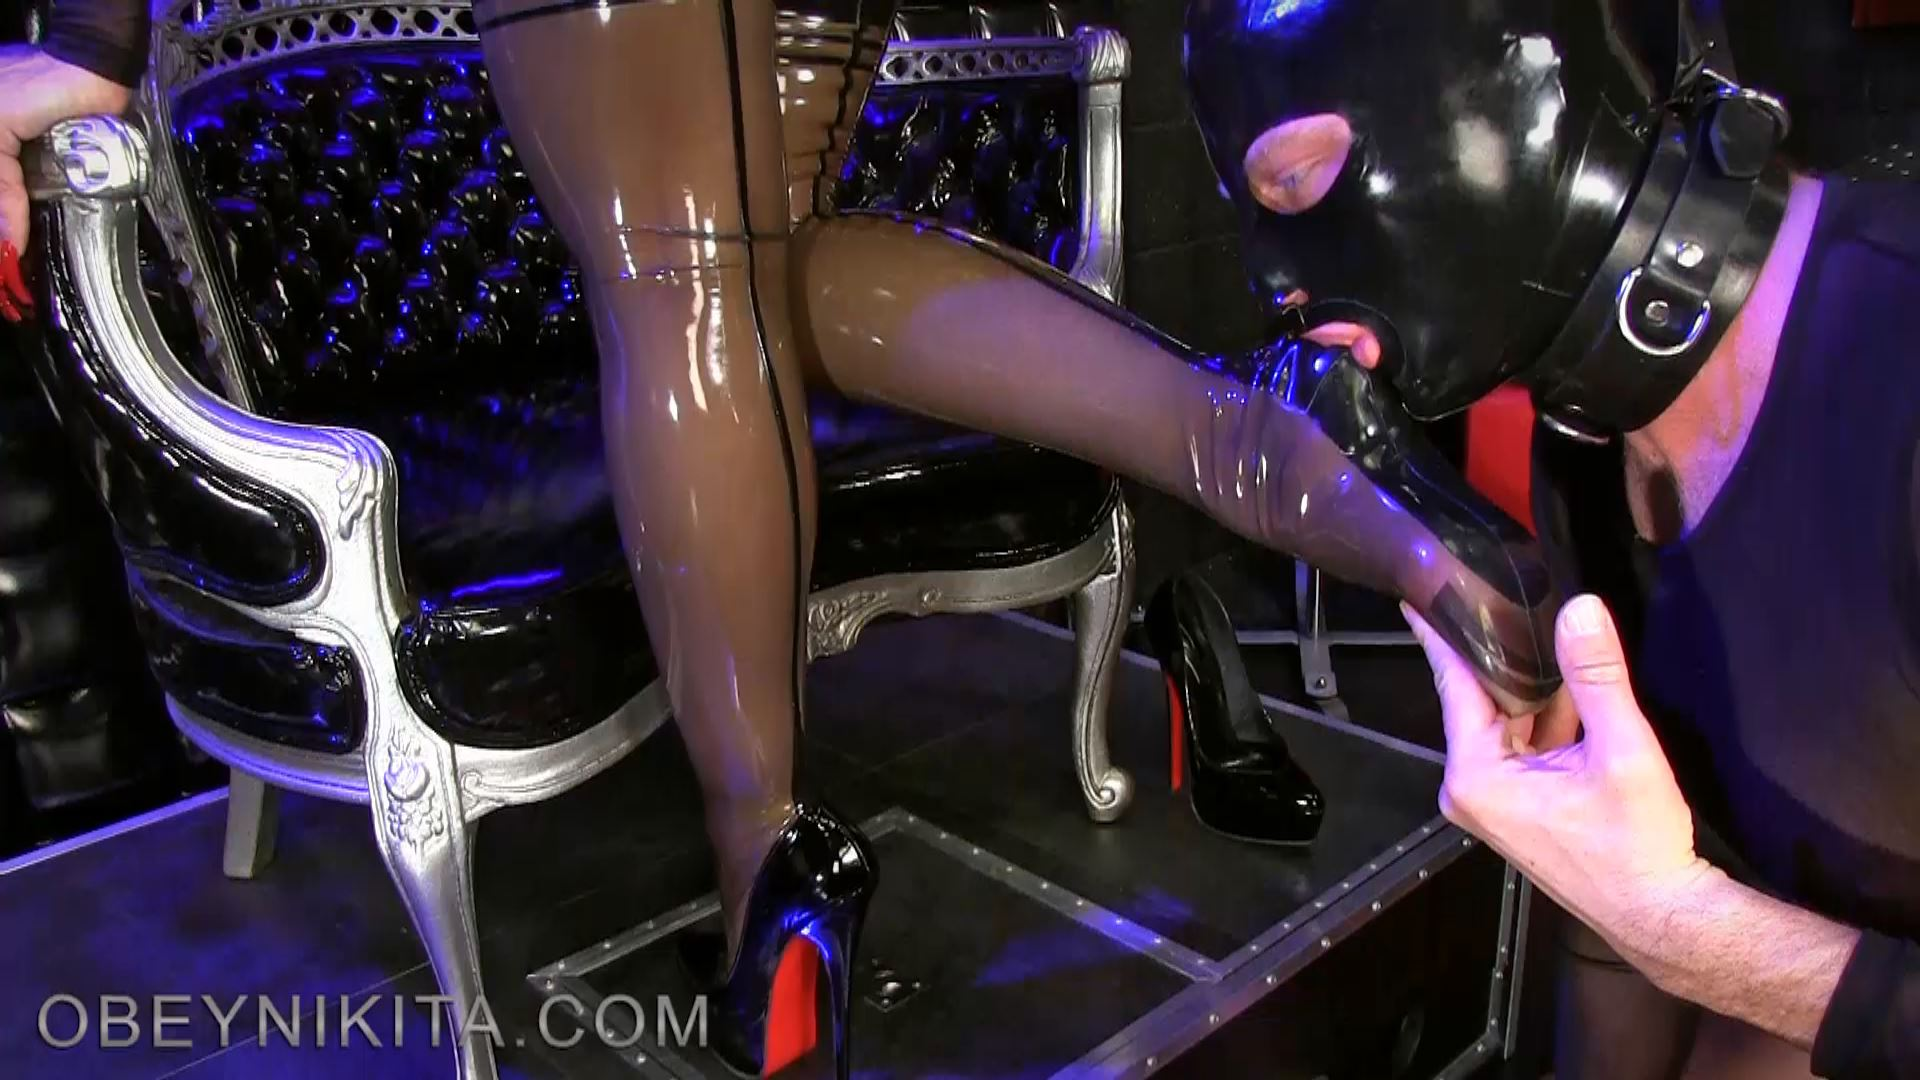 SHINY SEAMED STOCKINGS. FEATURING: MISTRESS NIKITA - OBEYNIKITA - FULL HD/1080p/MP4